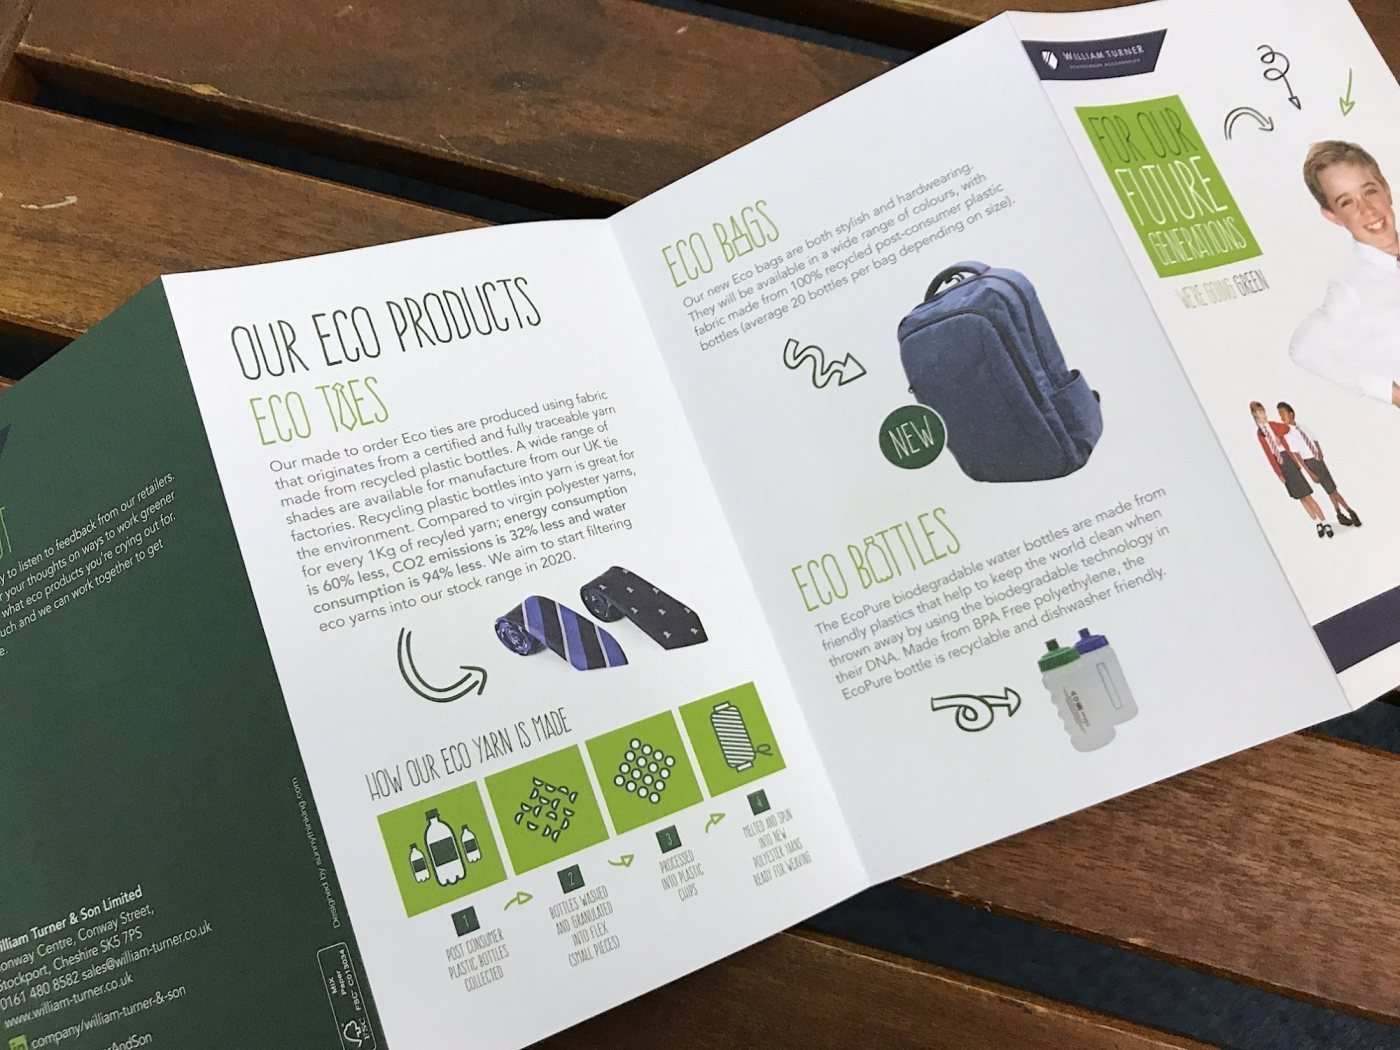 Eco products by William Turner